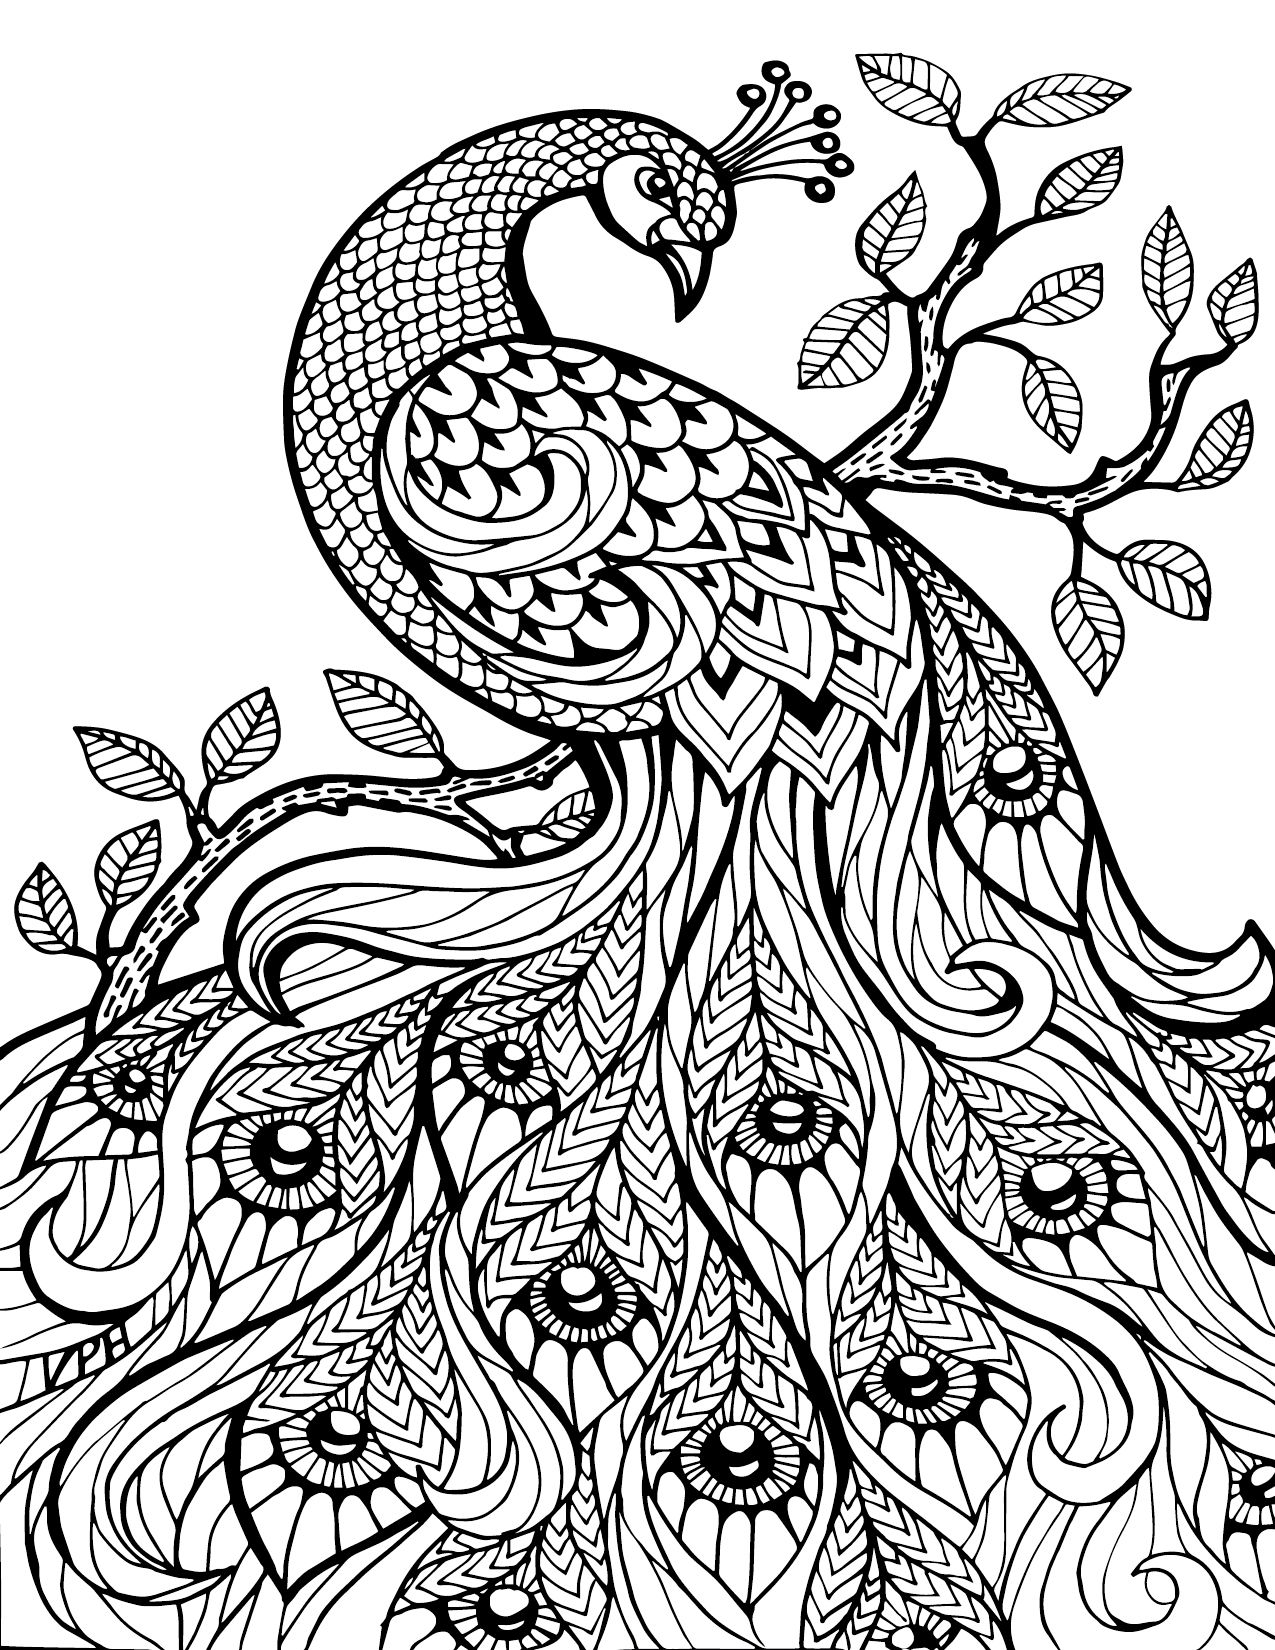 printable adults coloring pages free - photo#45